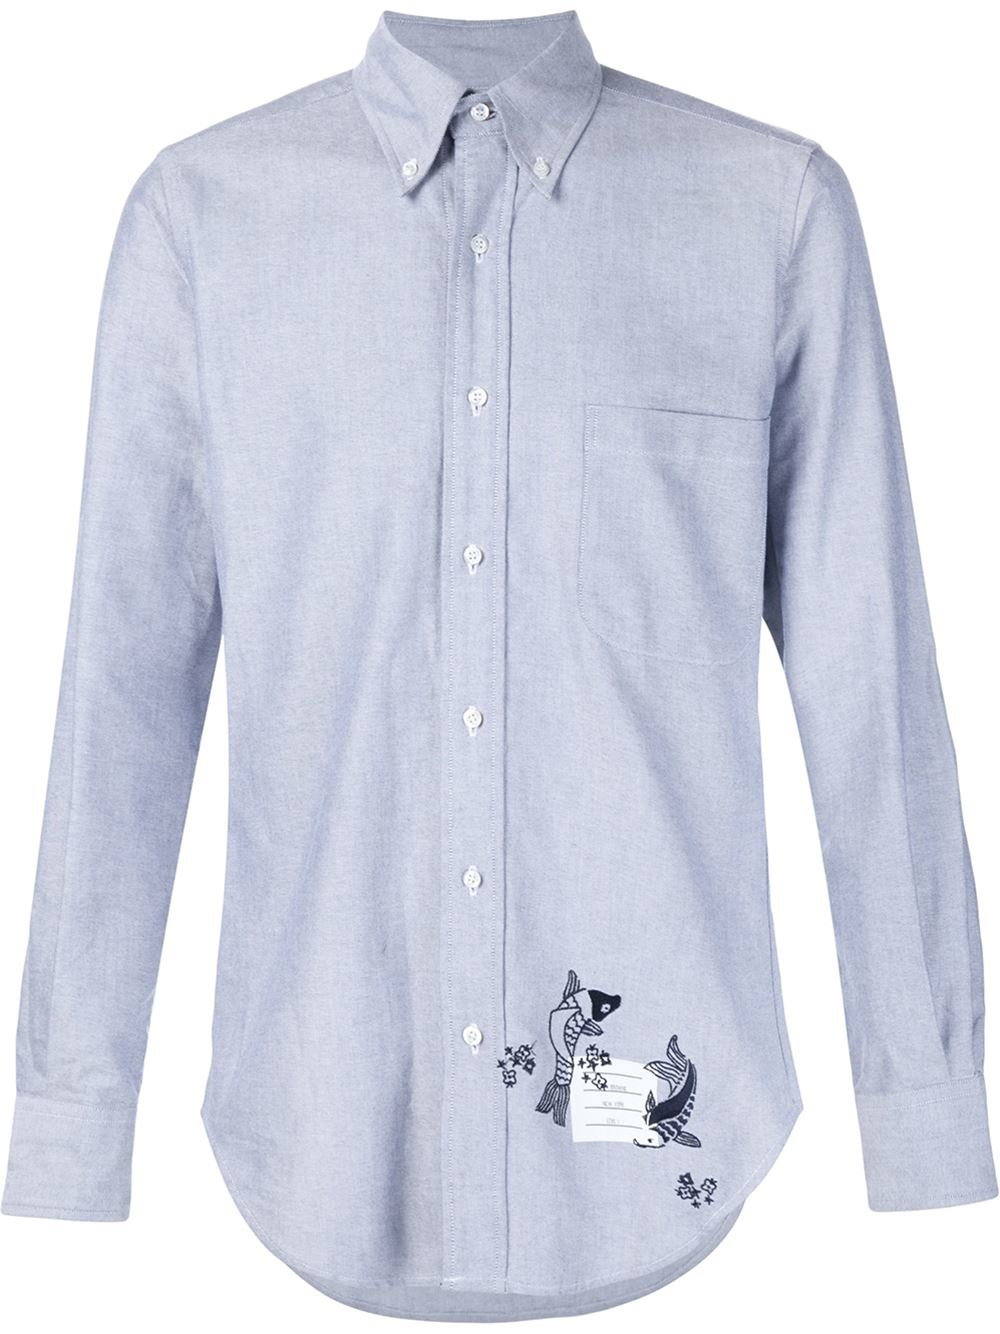 Thom browne embroidered fish shirt in blue for men lyst for Embroidered fishing shirts